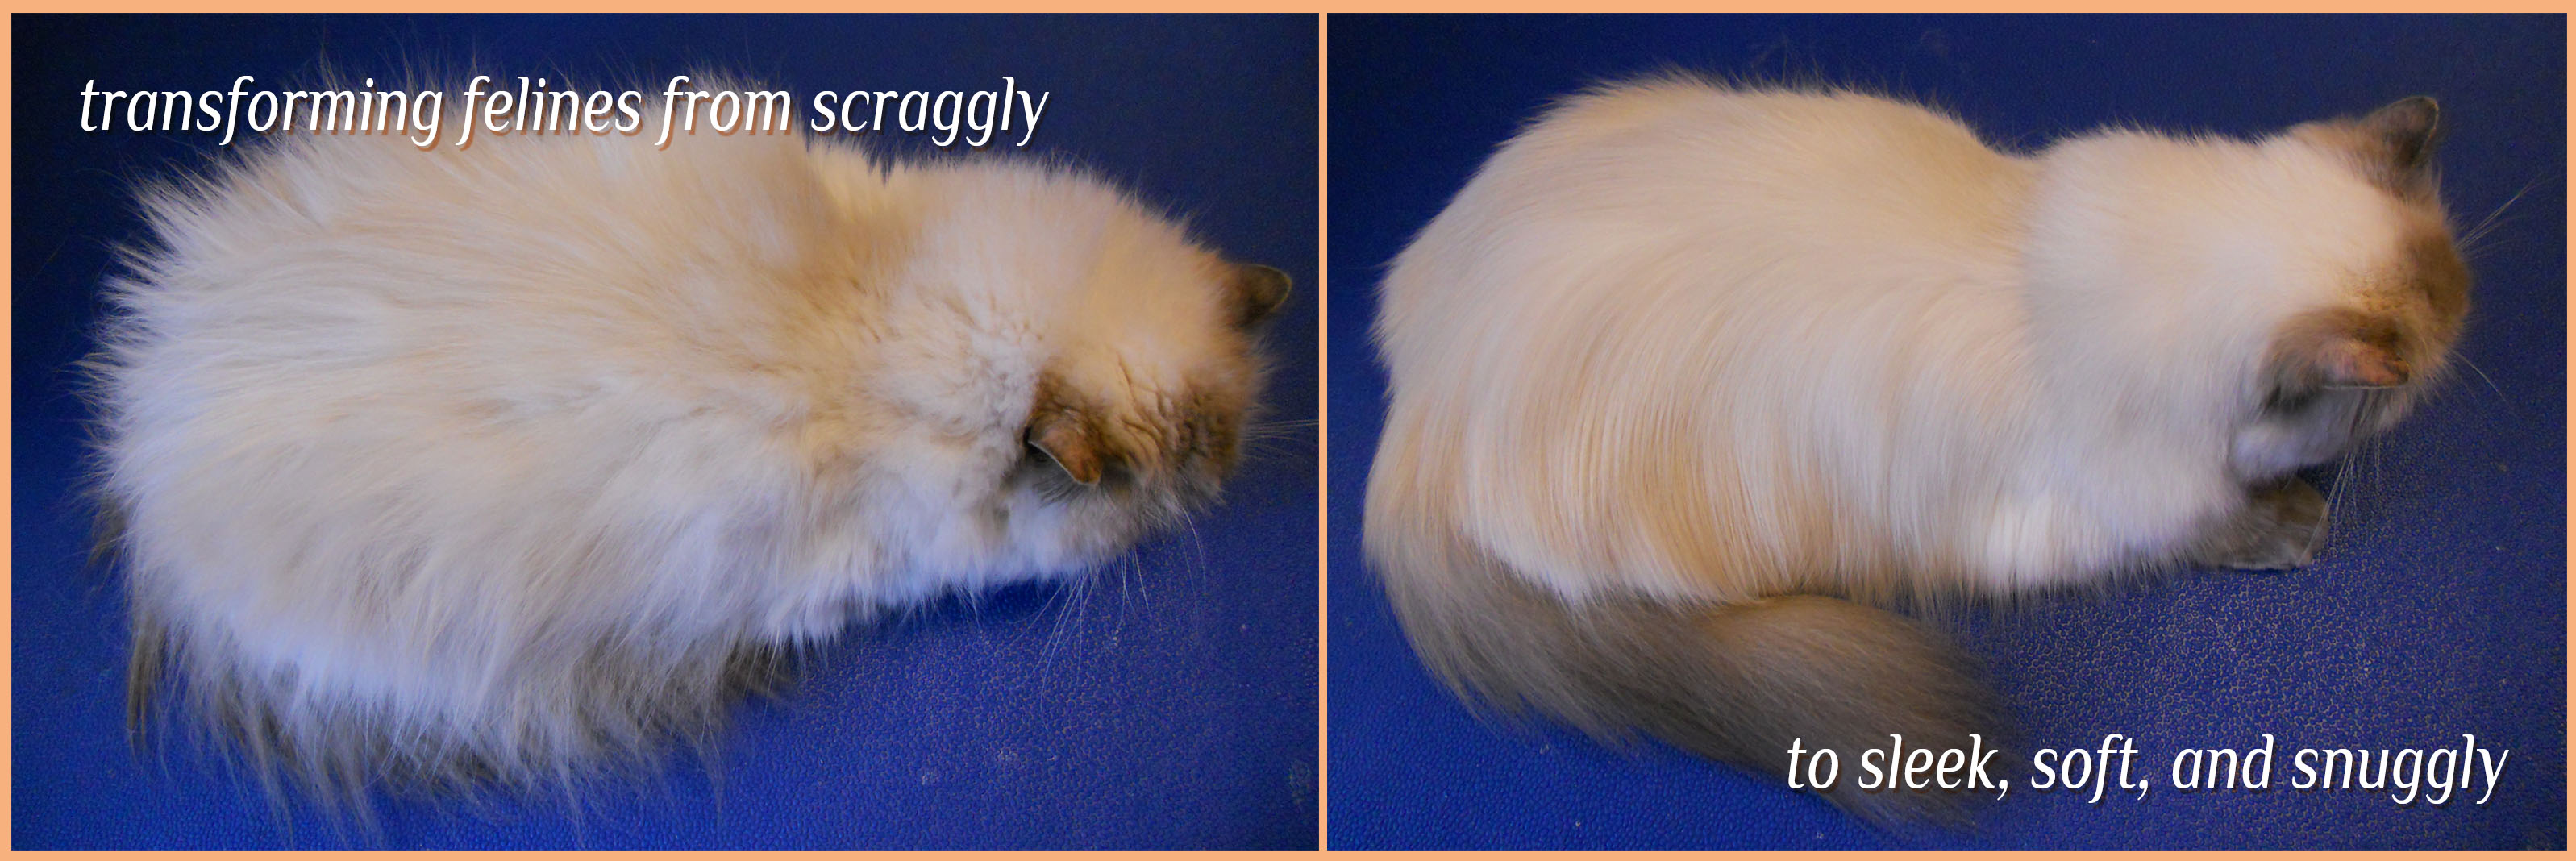 transforming felines from scraggly to sleek, soft, and snuggly